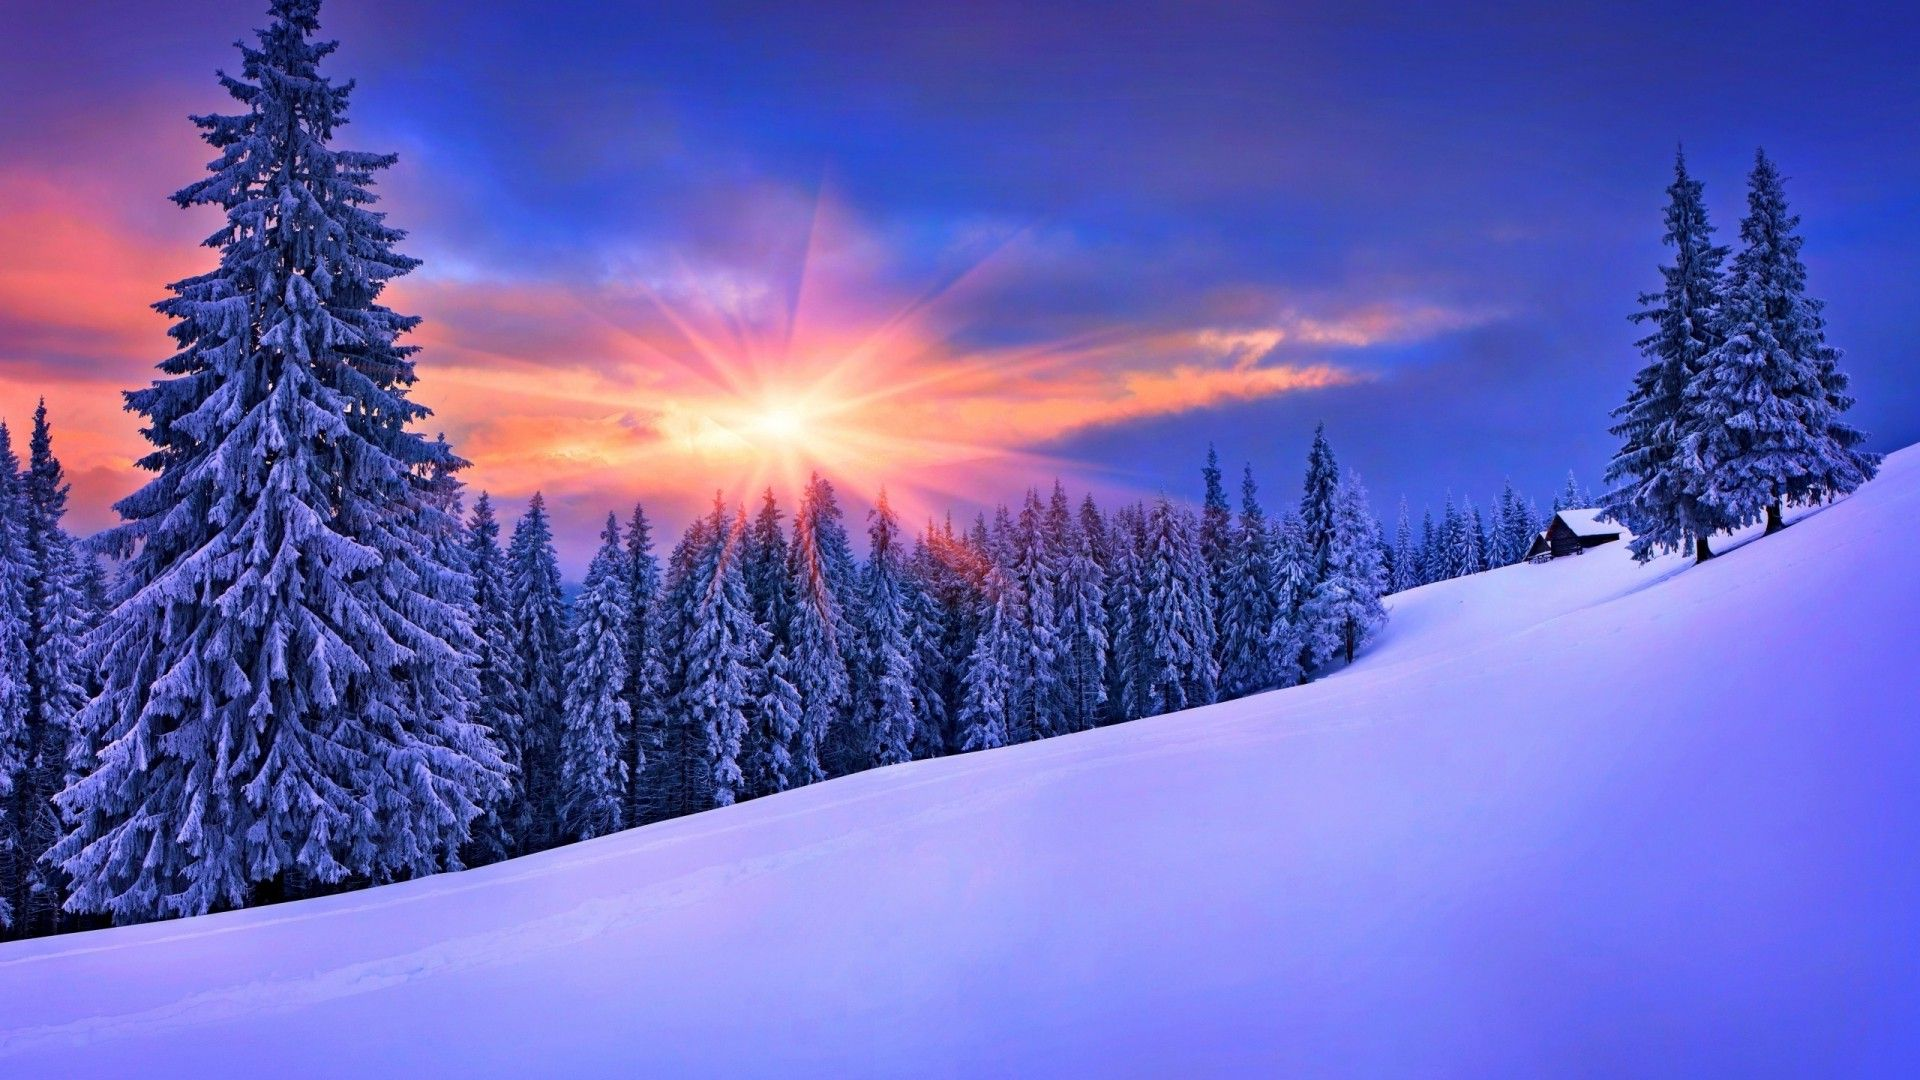 Winter Nature Wallpapers